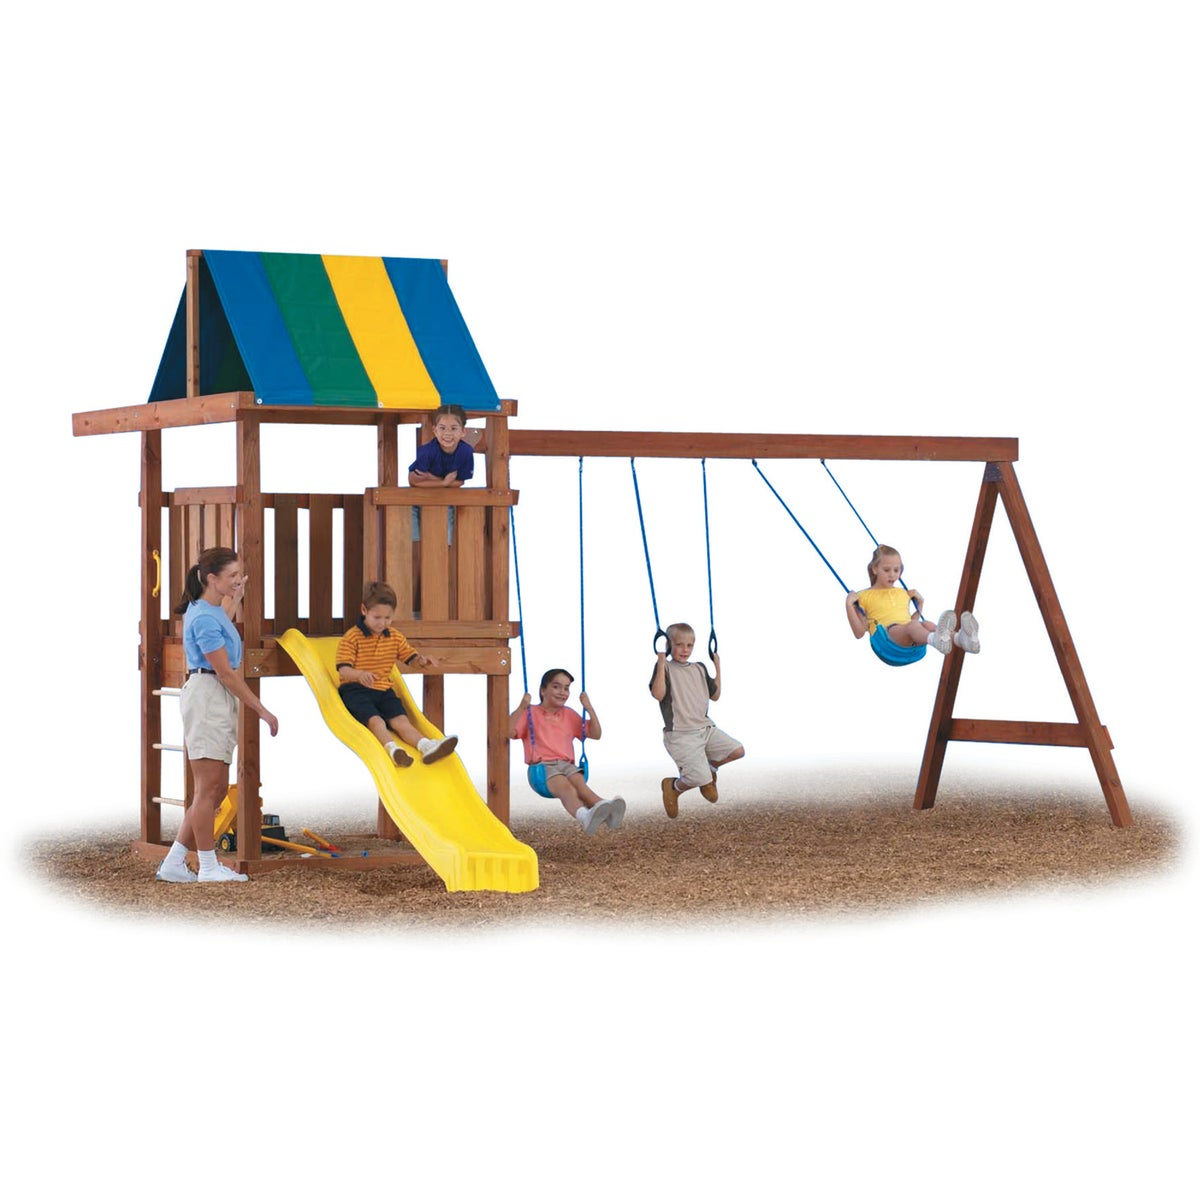 WRANGLER PLAYGROUND KIT - NE5056 by Swing N Slide Corp